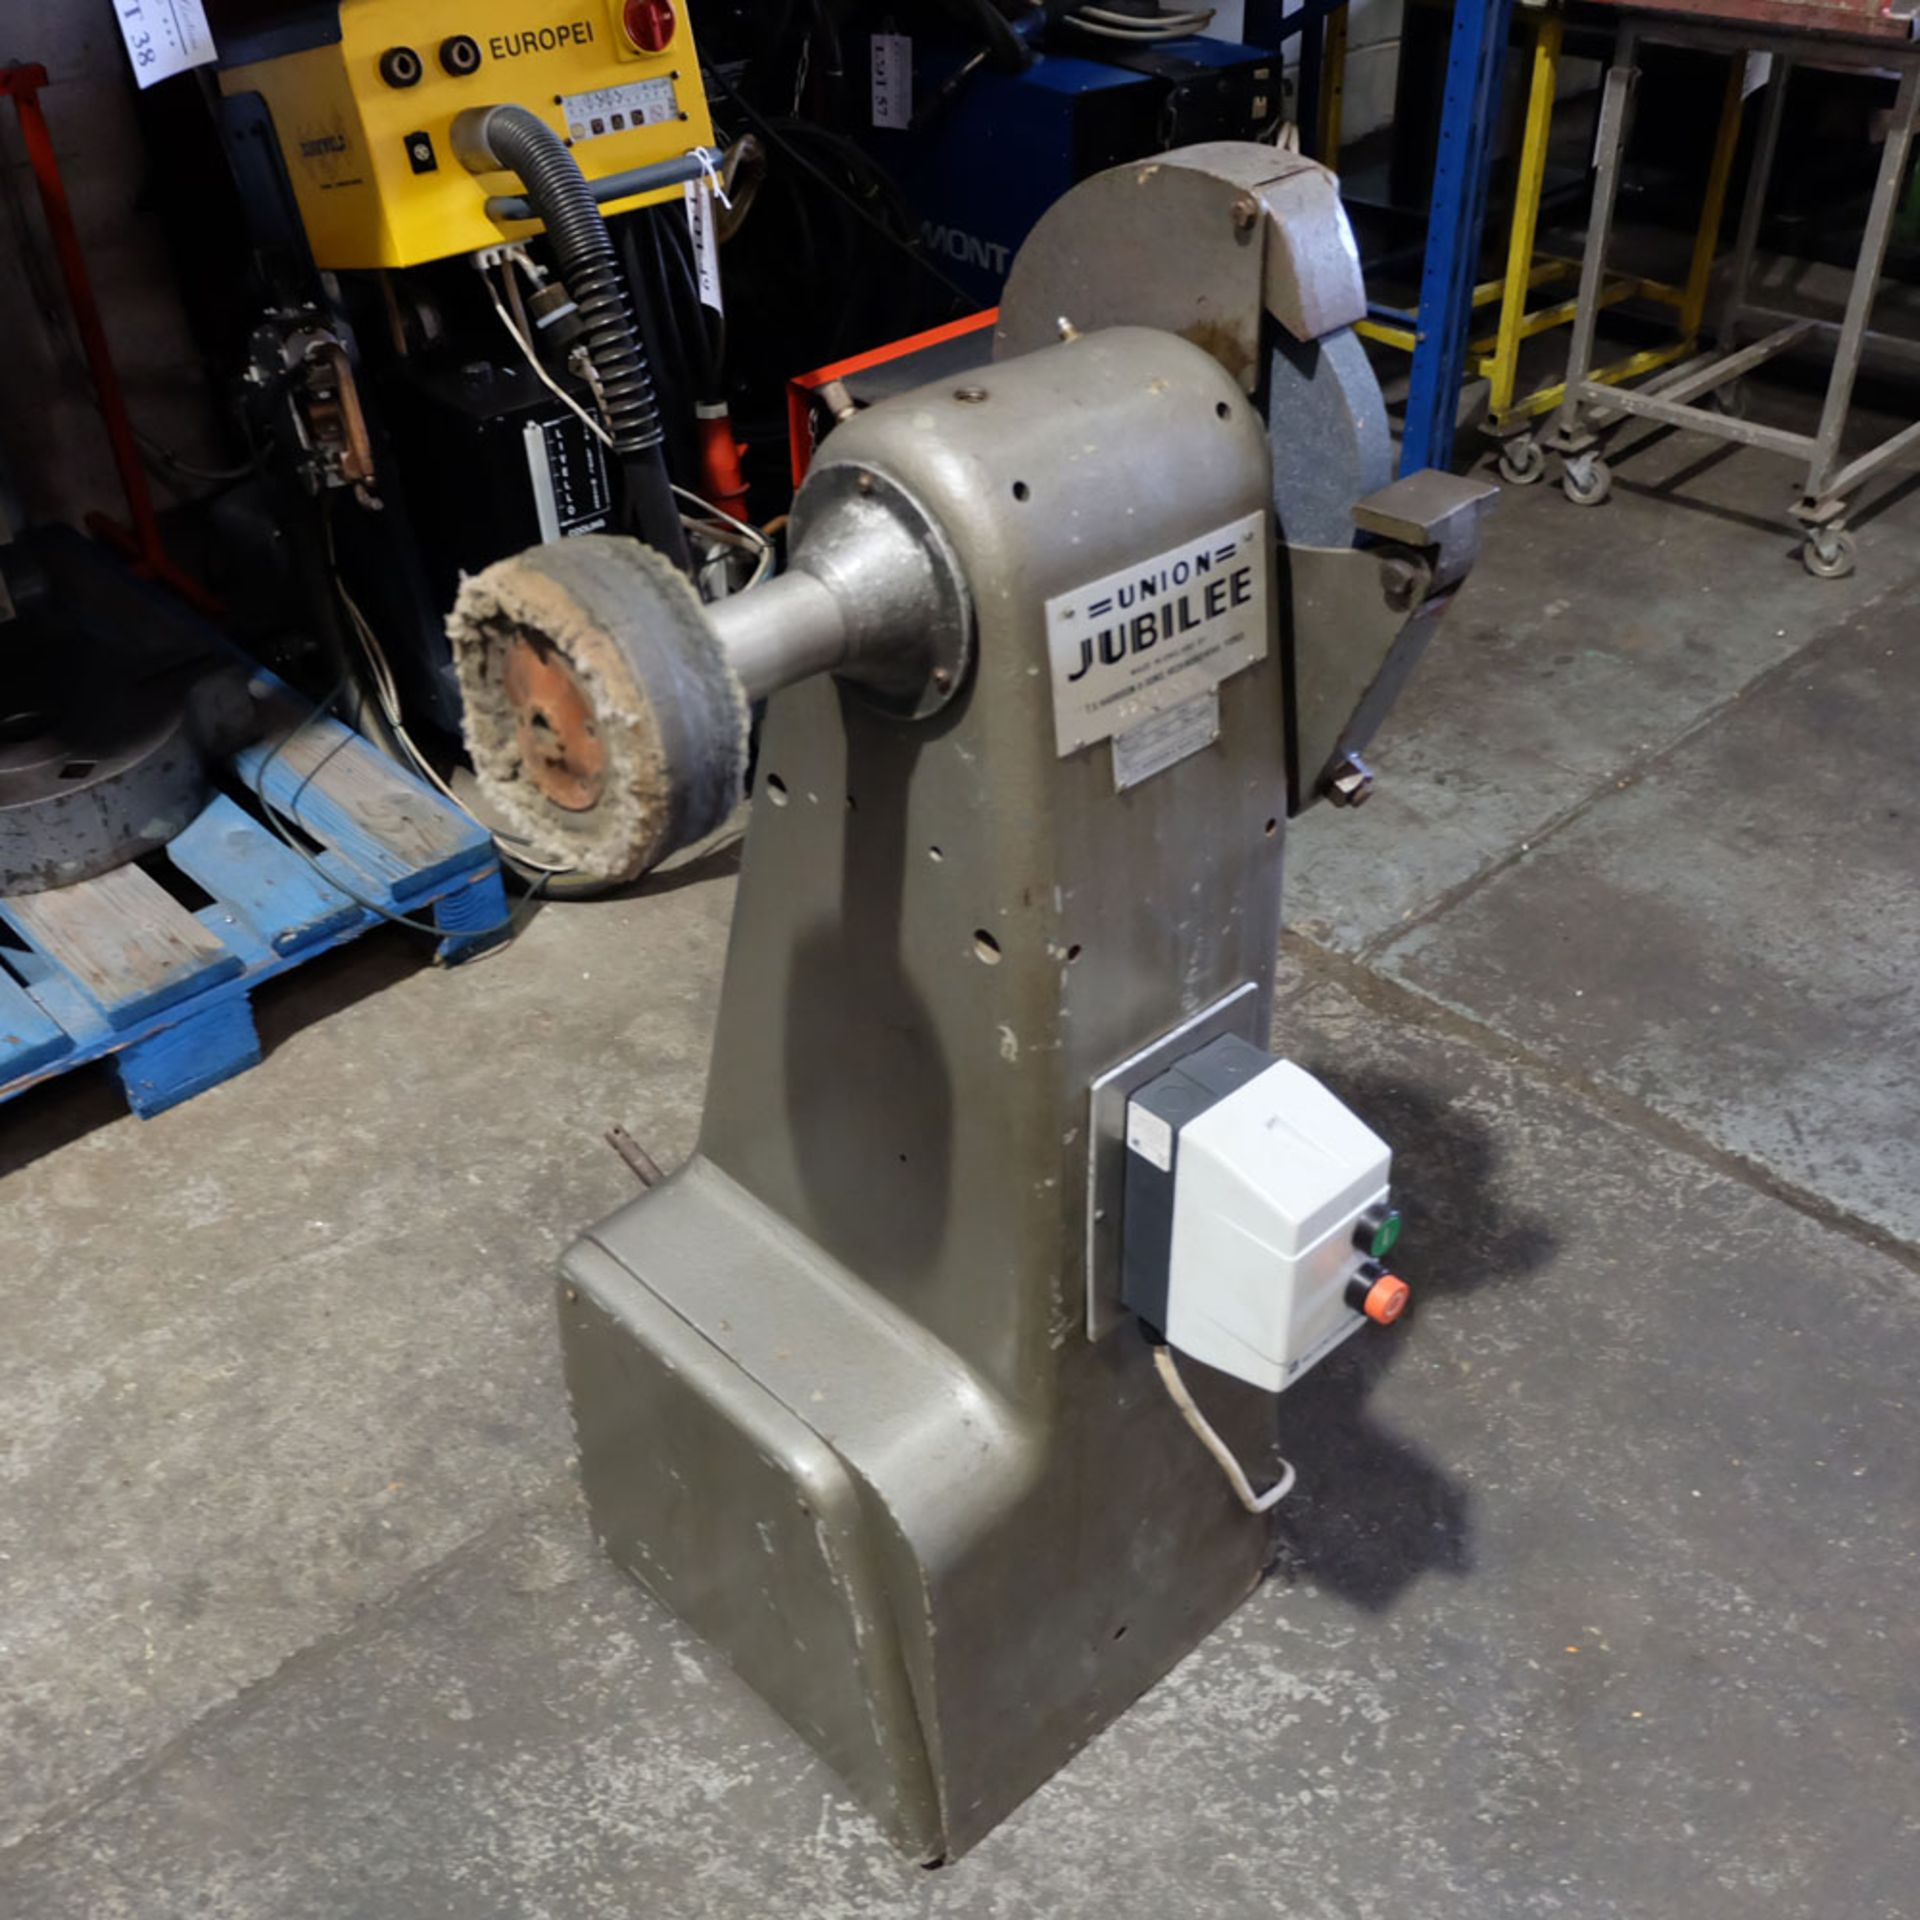 Union Jubilee Double Ended Pedestal Tool Grinding & Polishing Machine. Speed 2200rpm. - Image 2 of 6